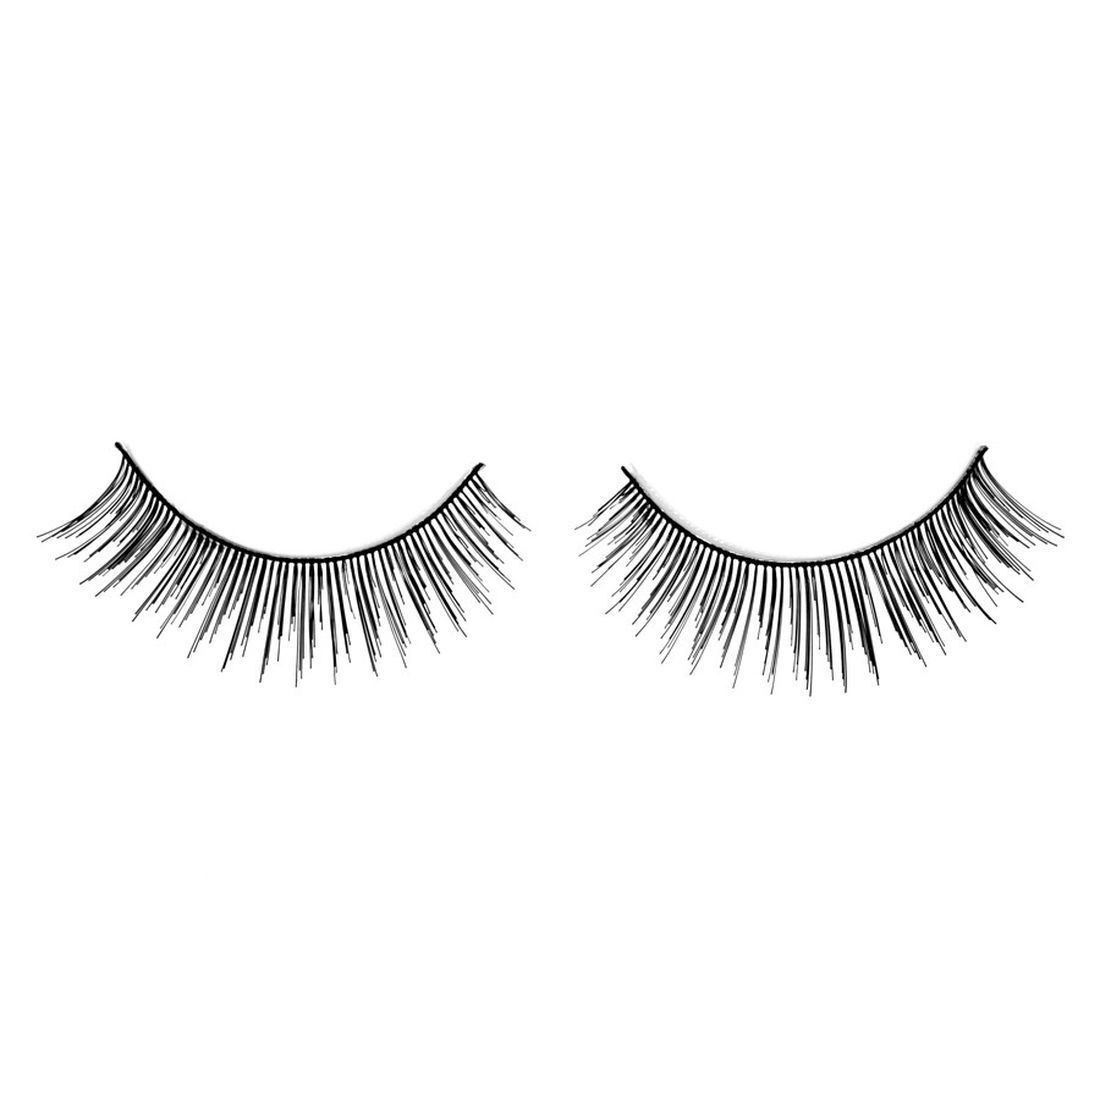 Falsche Wimpern - Natural Lash Kit